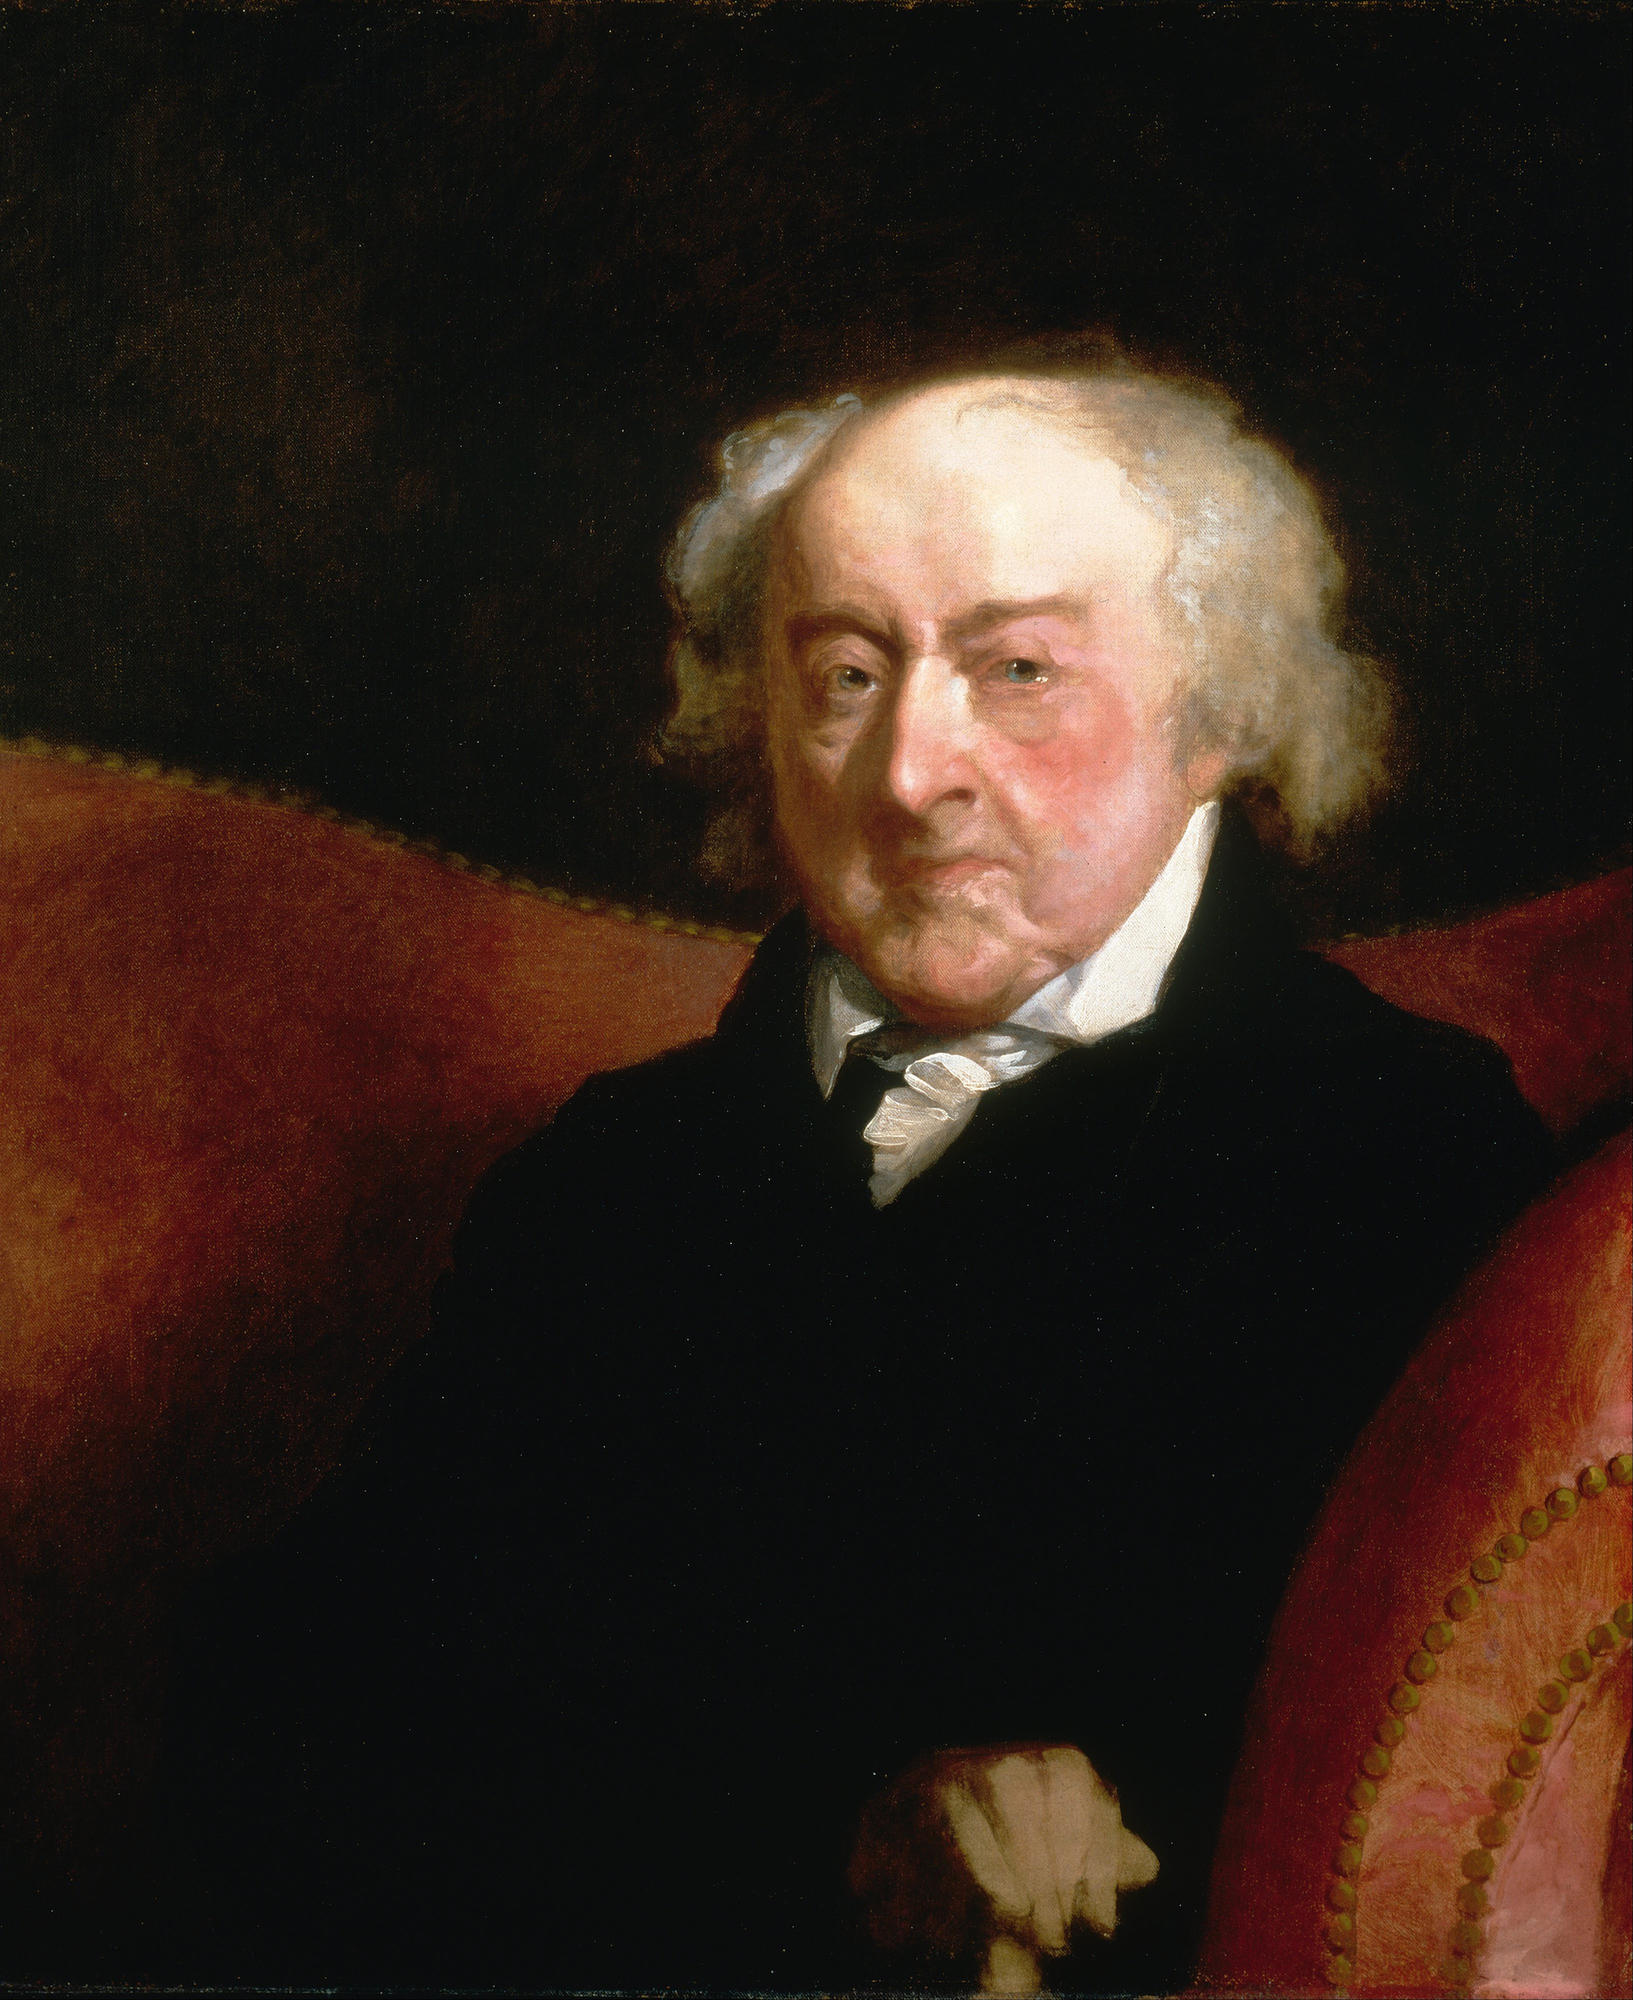 Gilbert Stuart, Portrait of John Adams, 1826